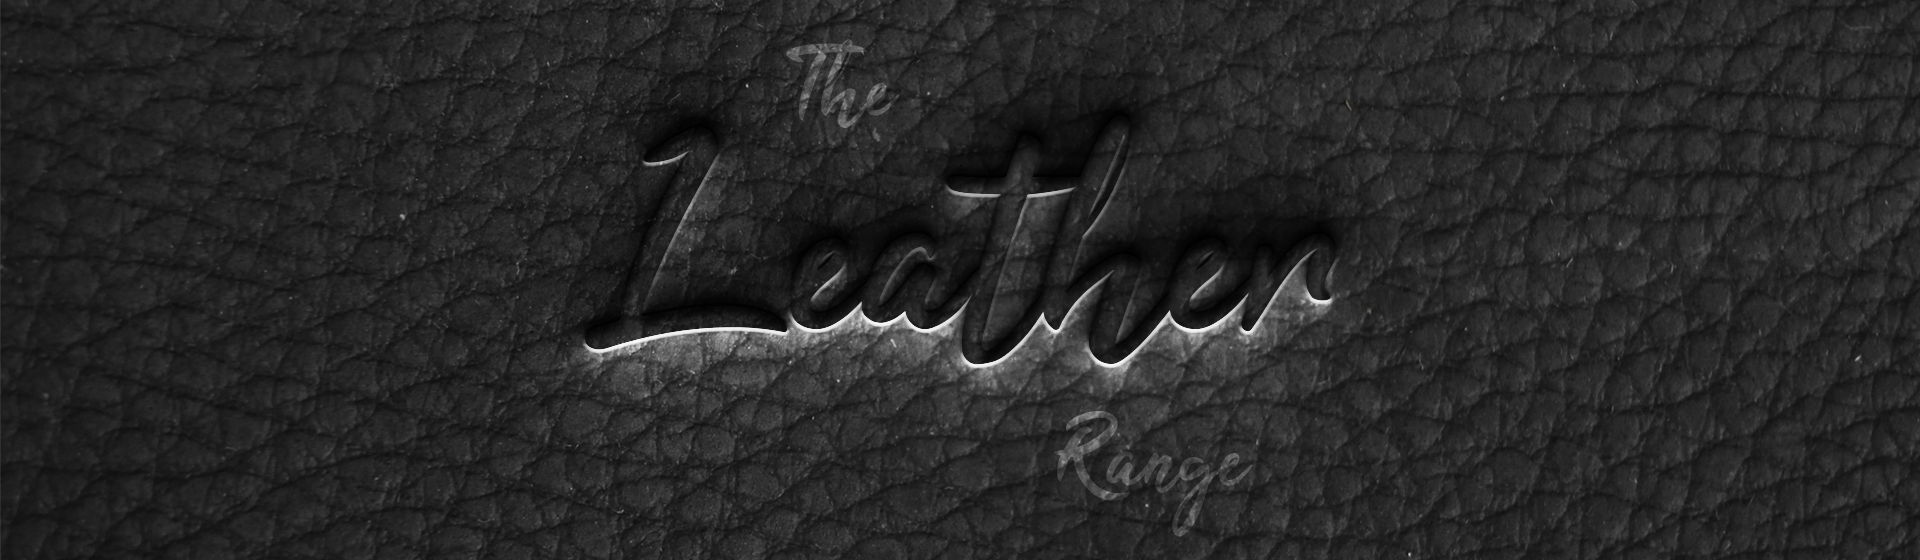 Banner for The Leather Range